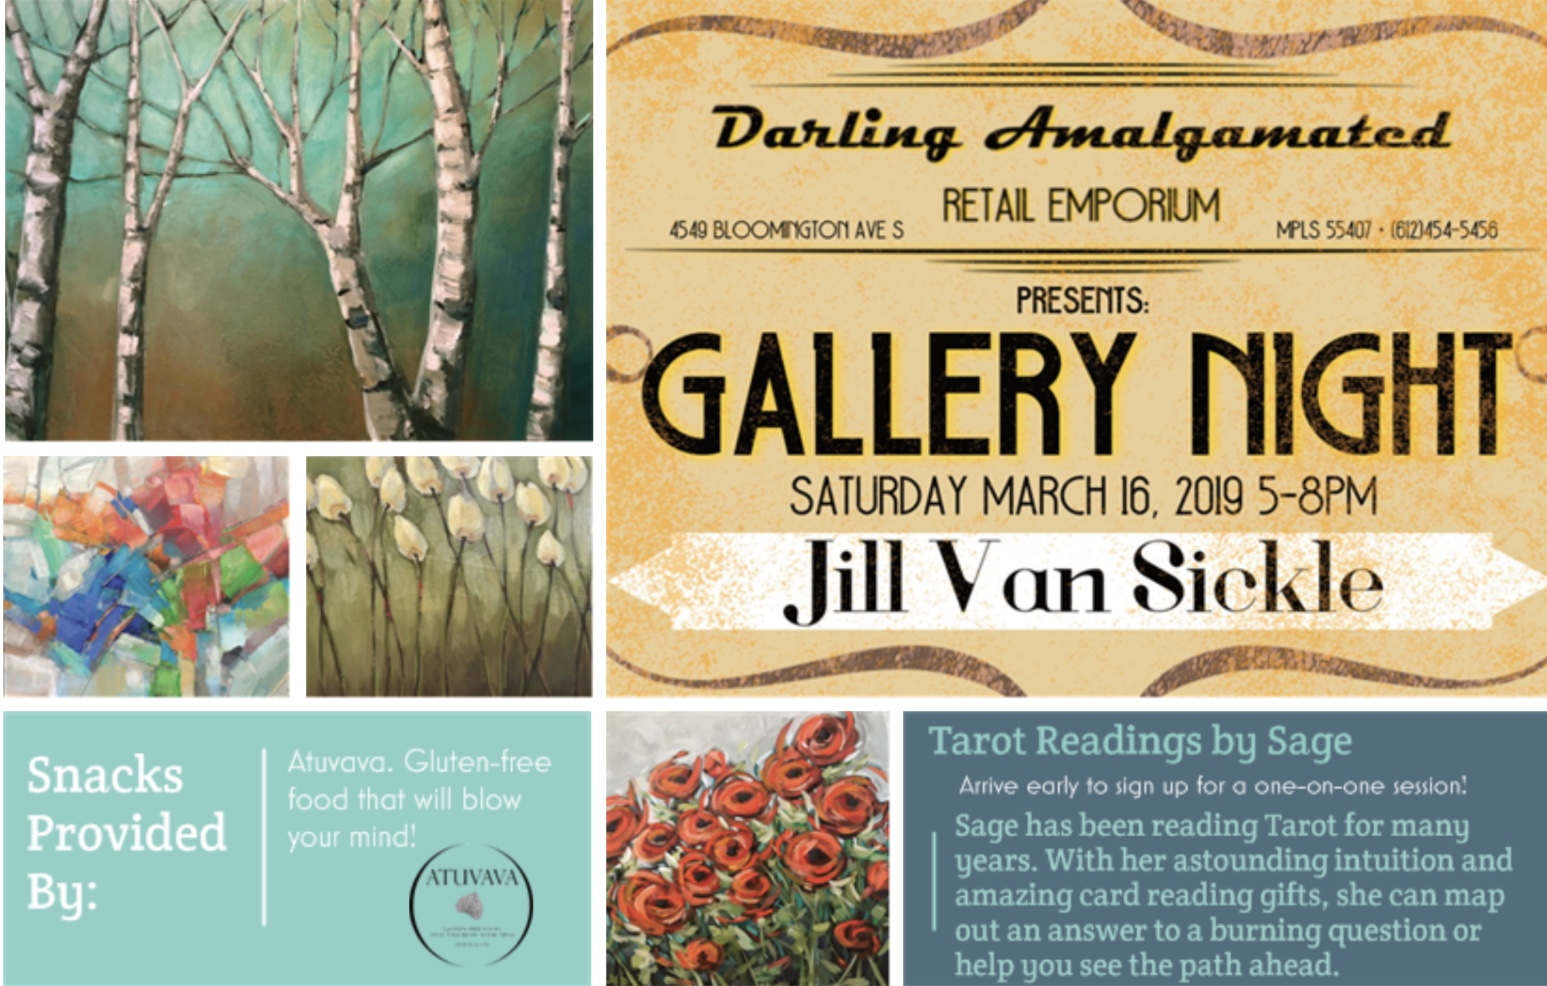 March 2019 – Darling Amalgamated Retail Emporium